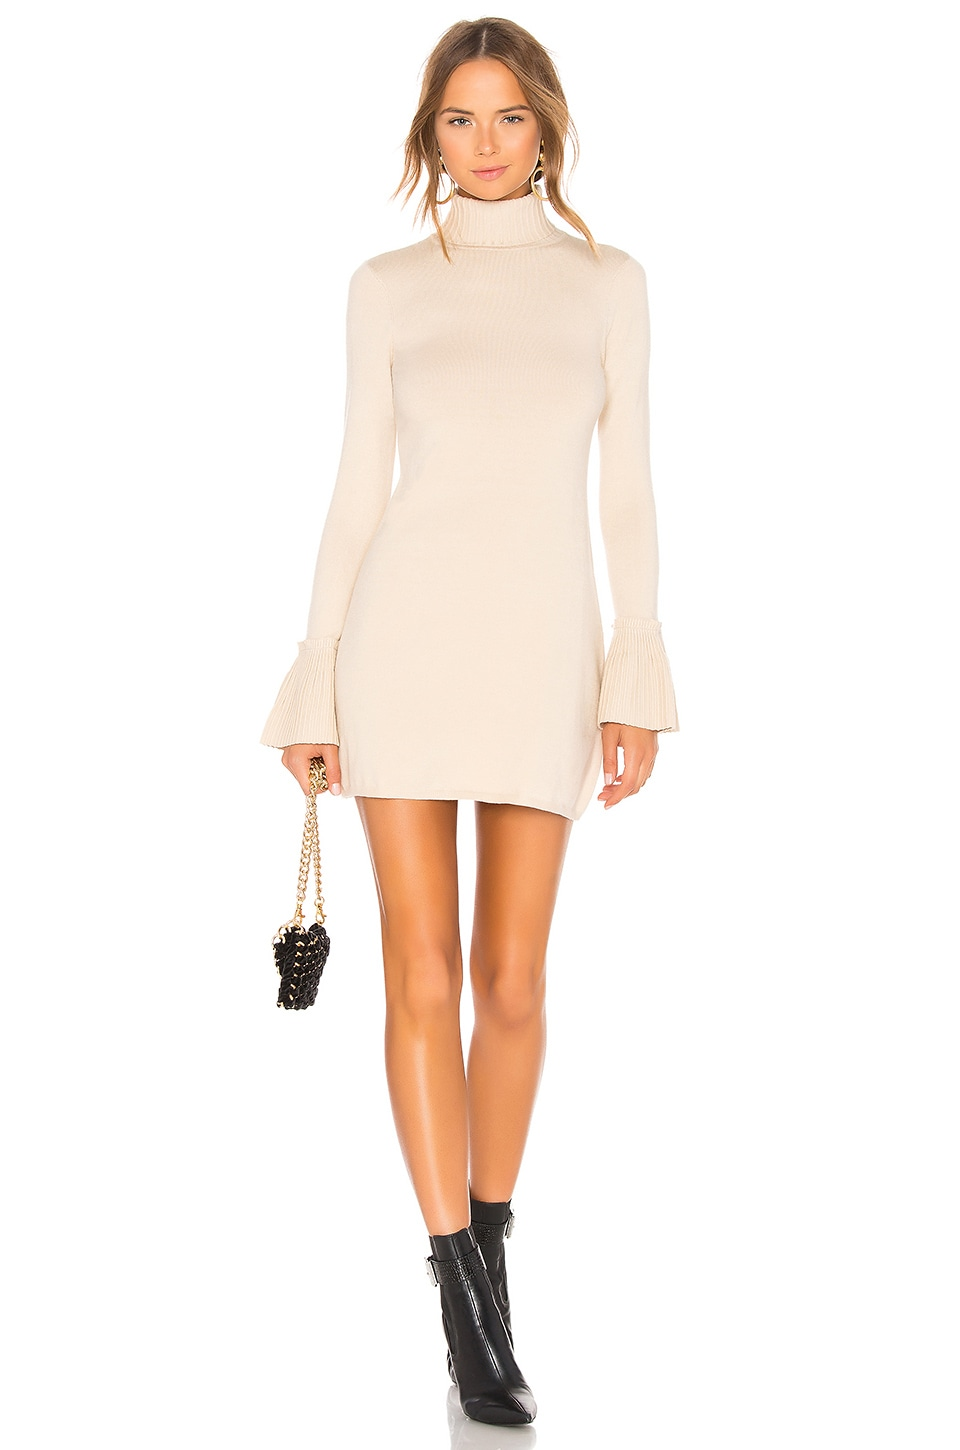 House of Harlow 1960 x REVOLVE Marni Dress in Nude